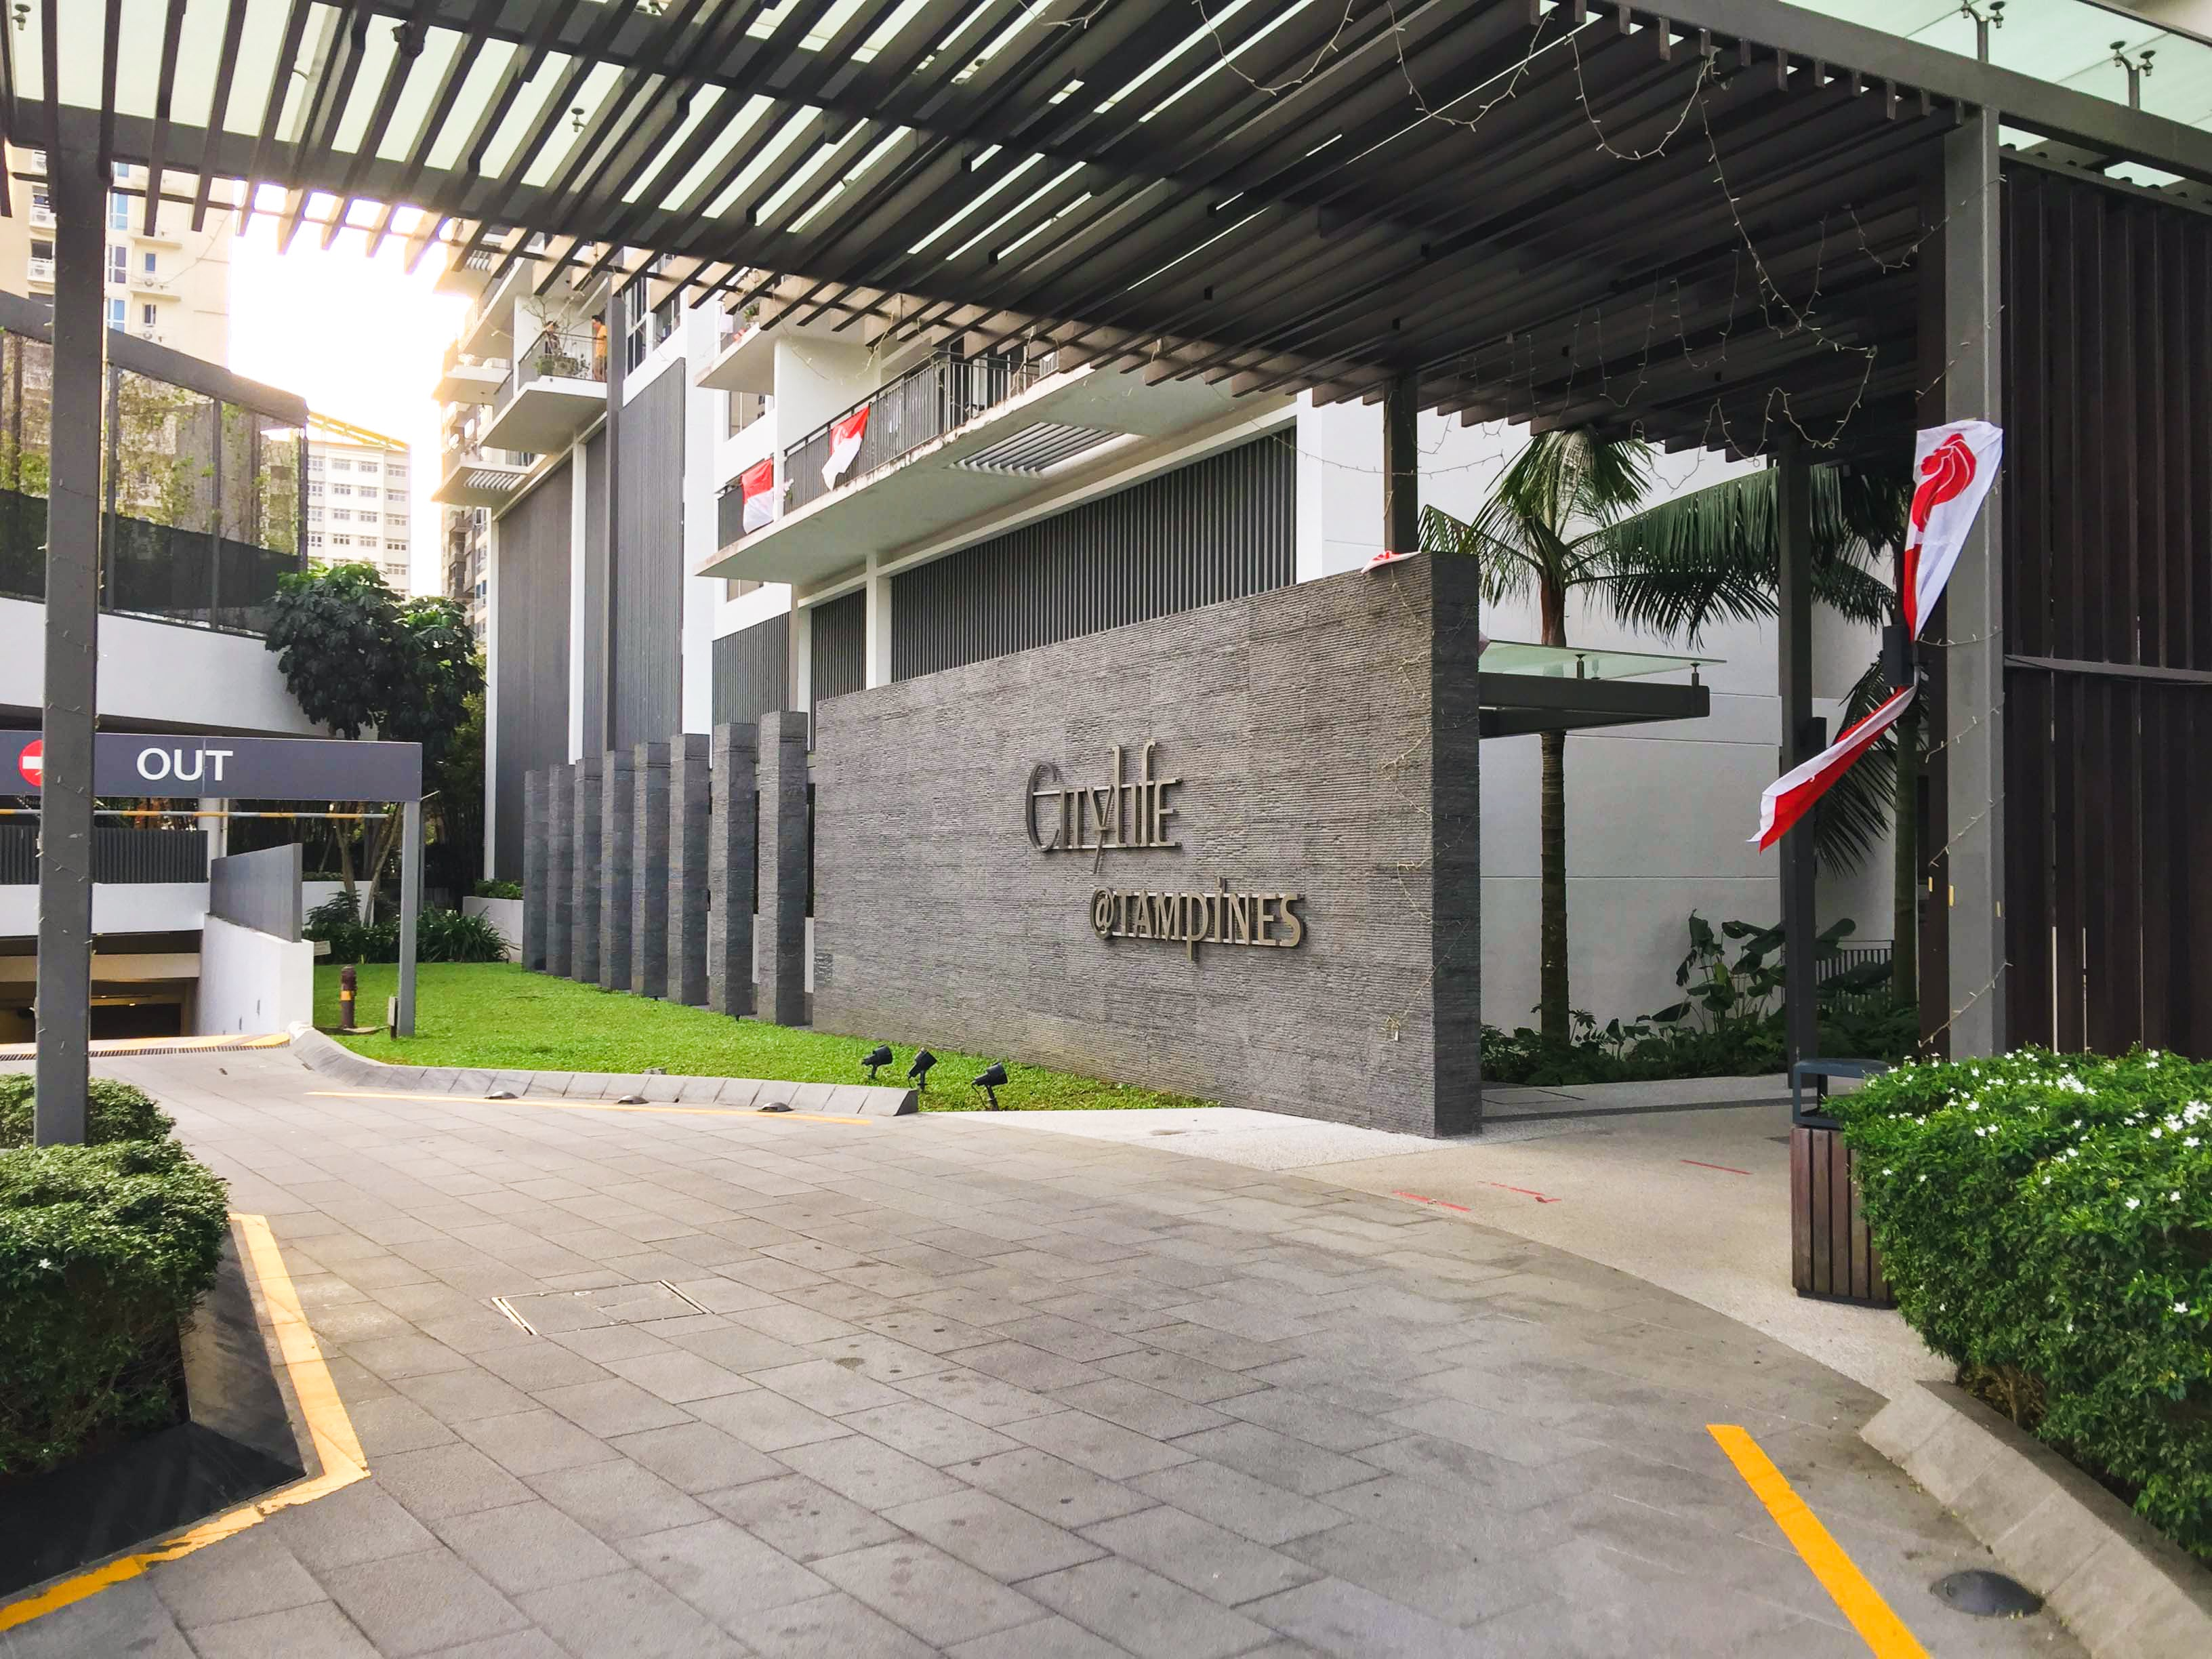 citylife @ tampines review